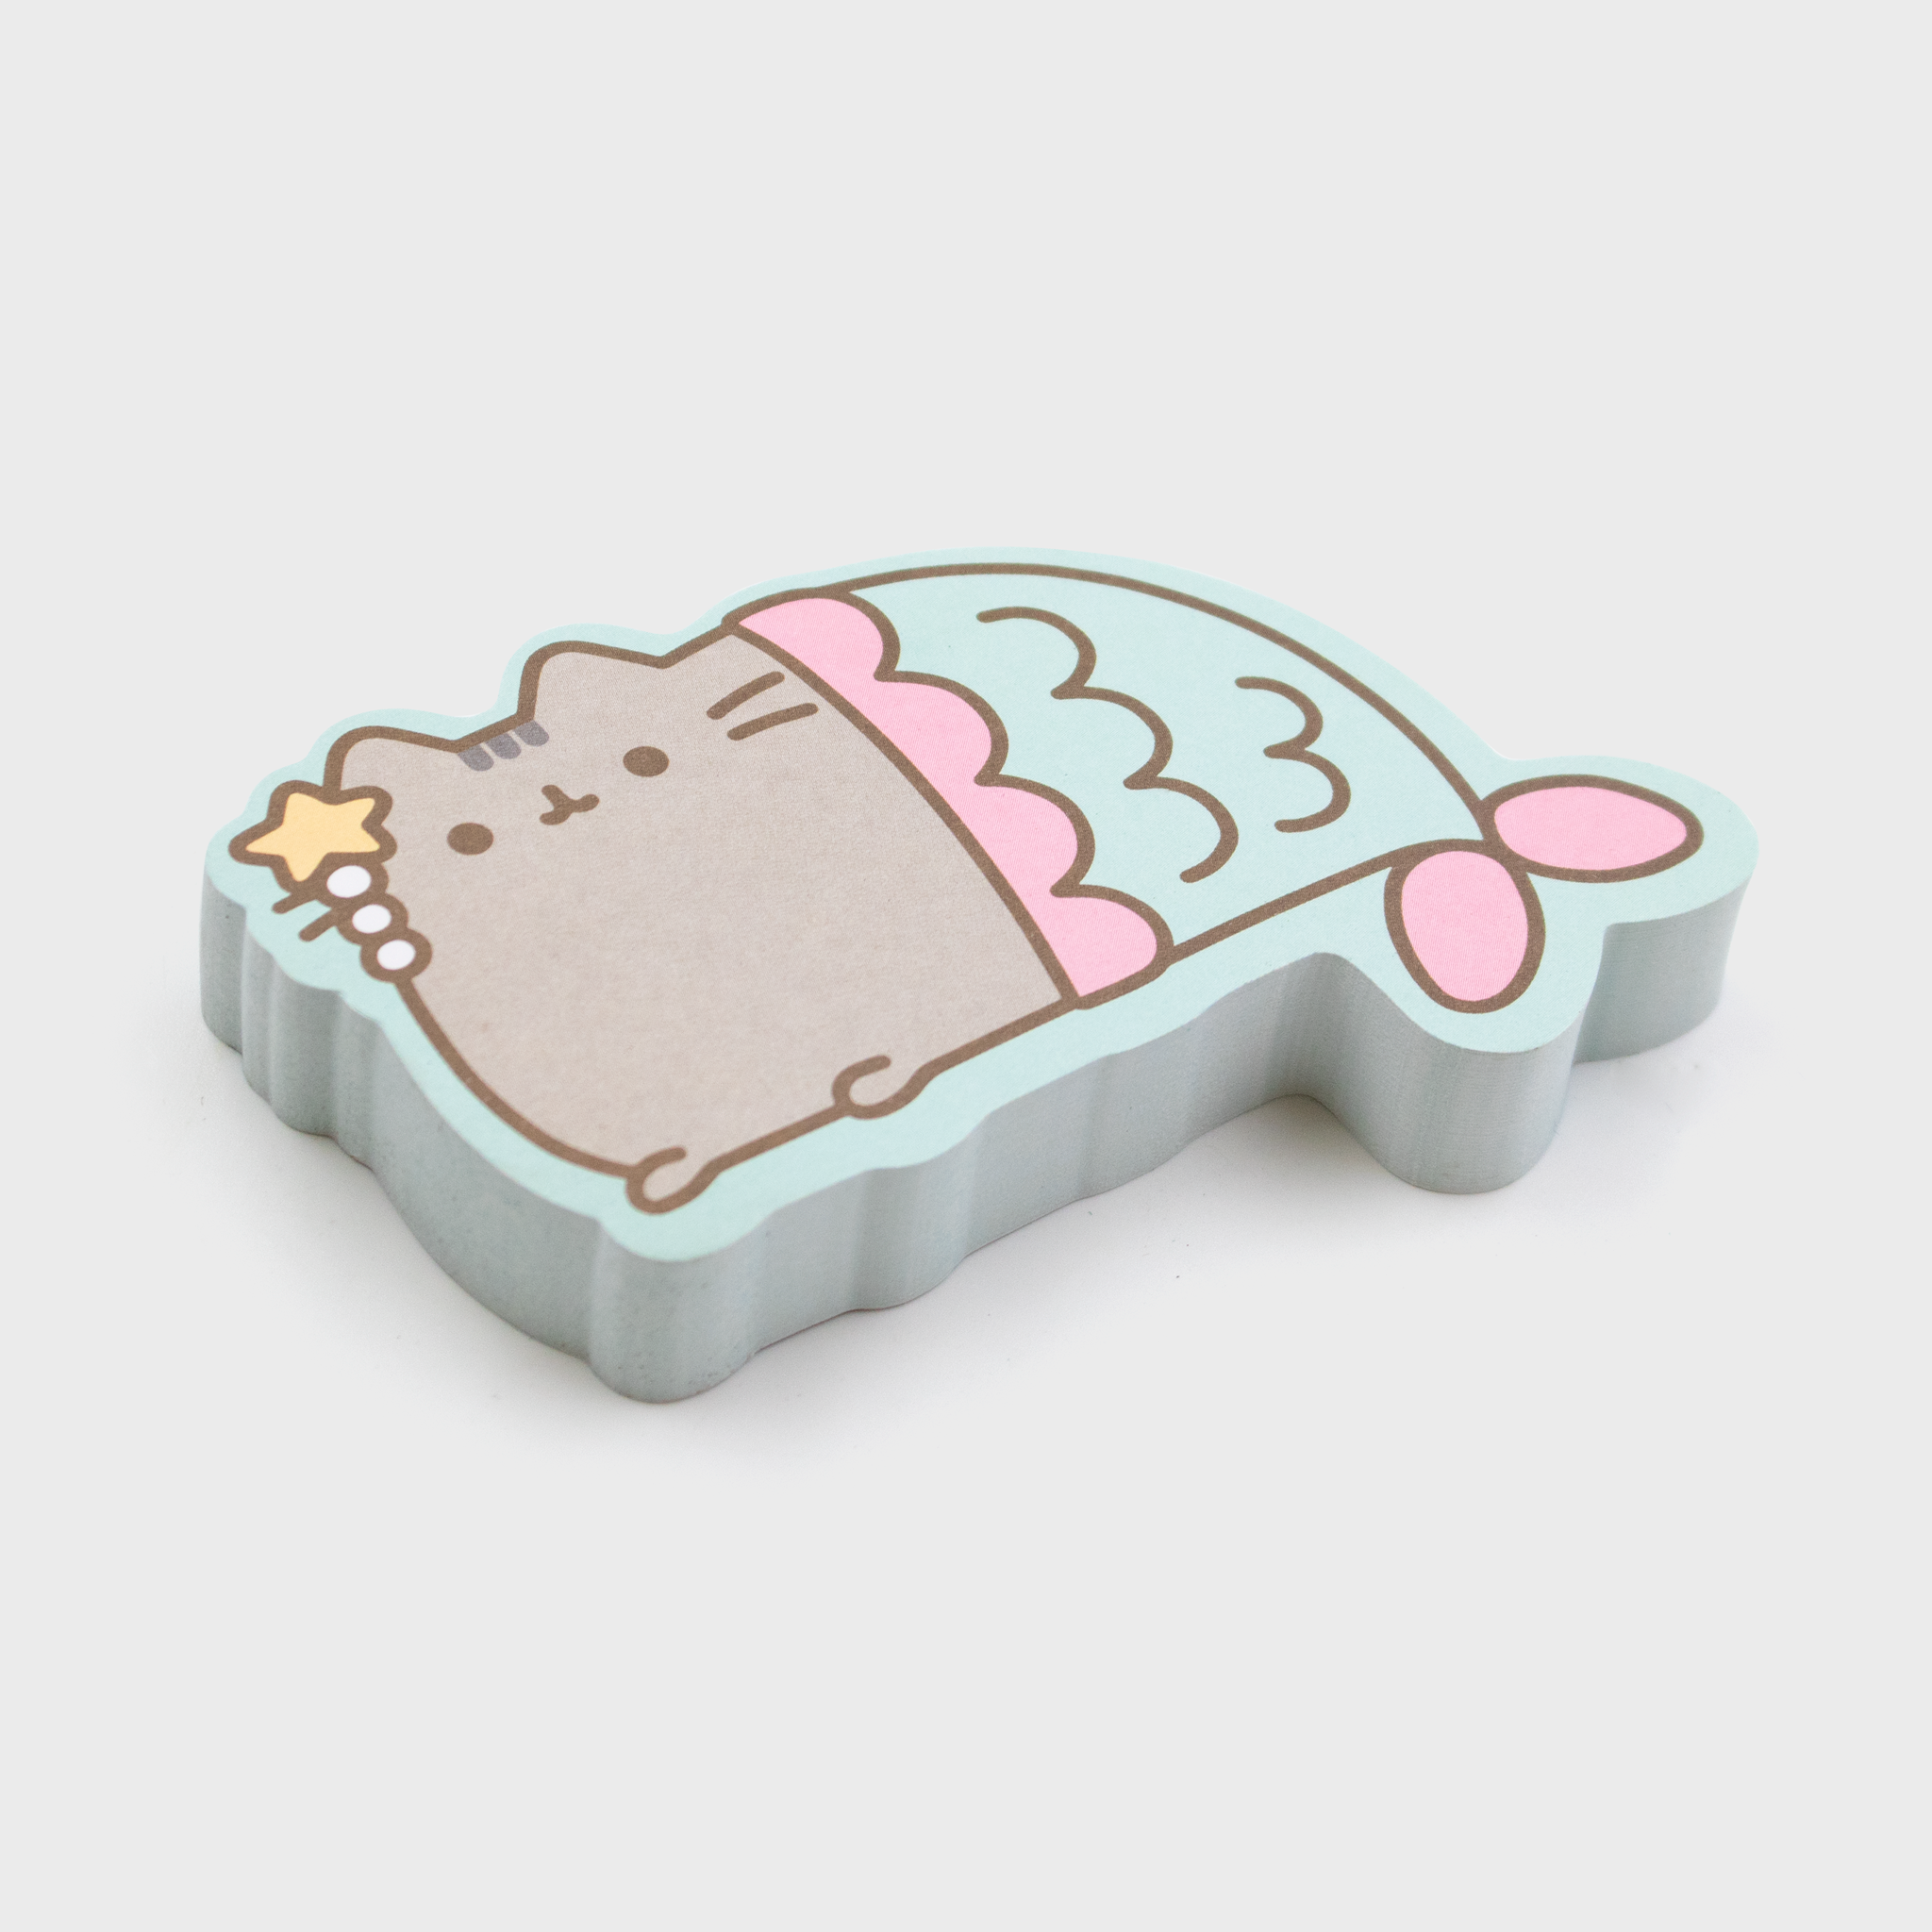 pusheen mermaid sticky notes cute adorable cat stationary desk home office work culturefly